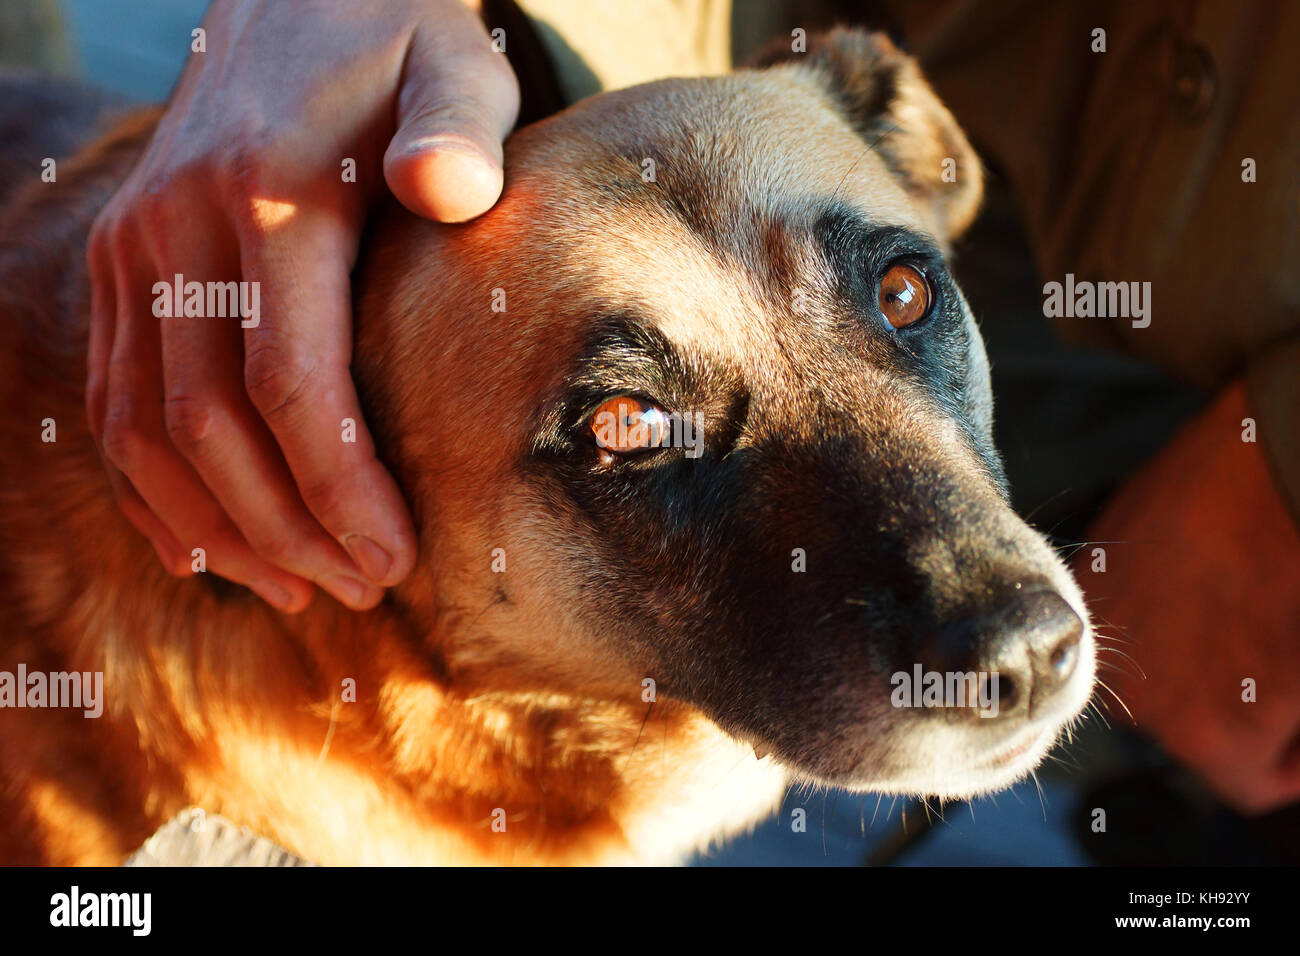 man is stroking a yellow dog. - Stock Image